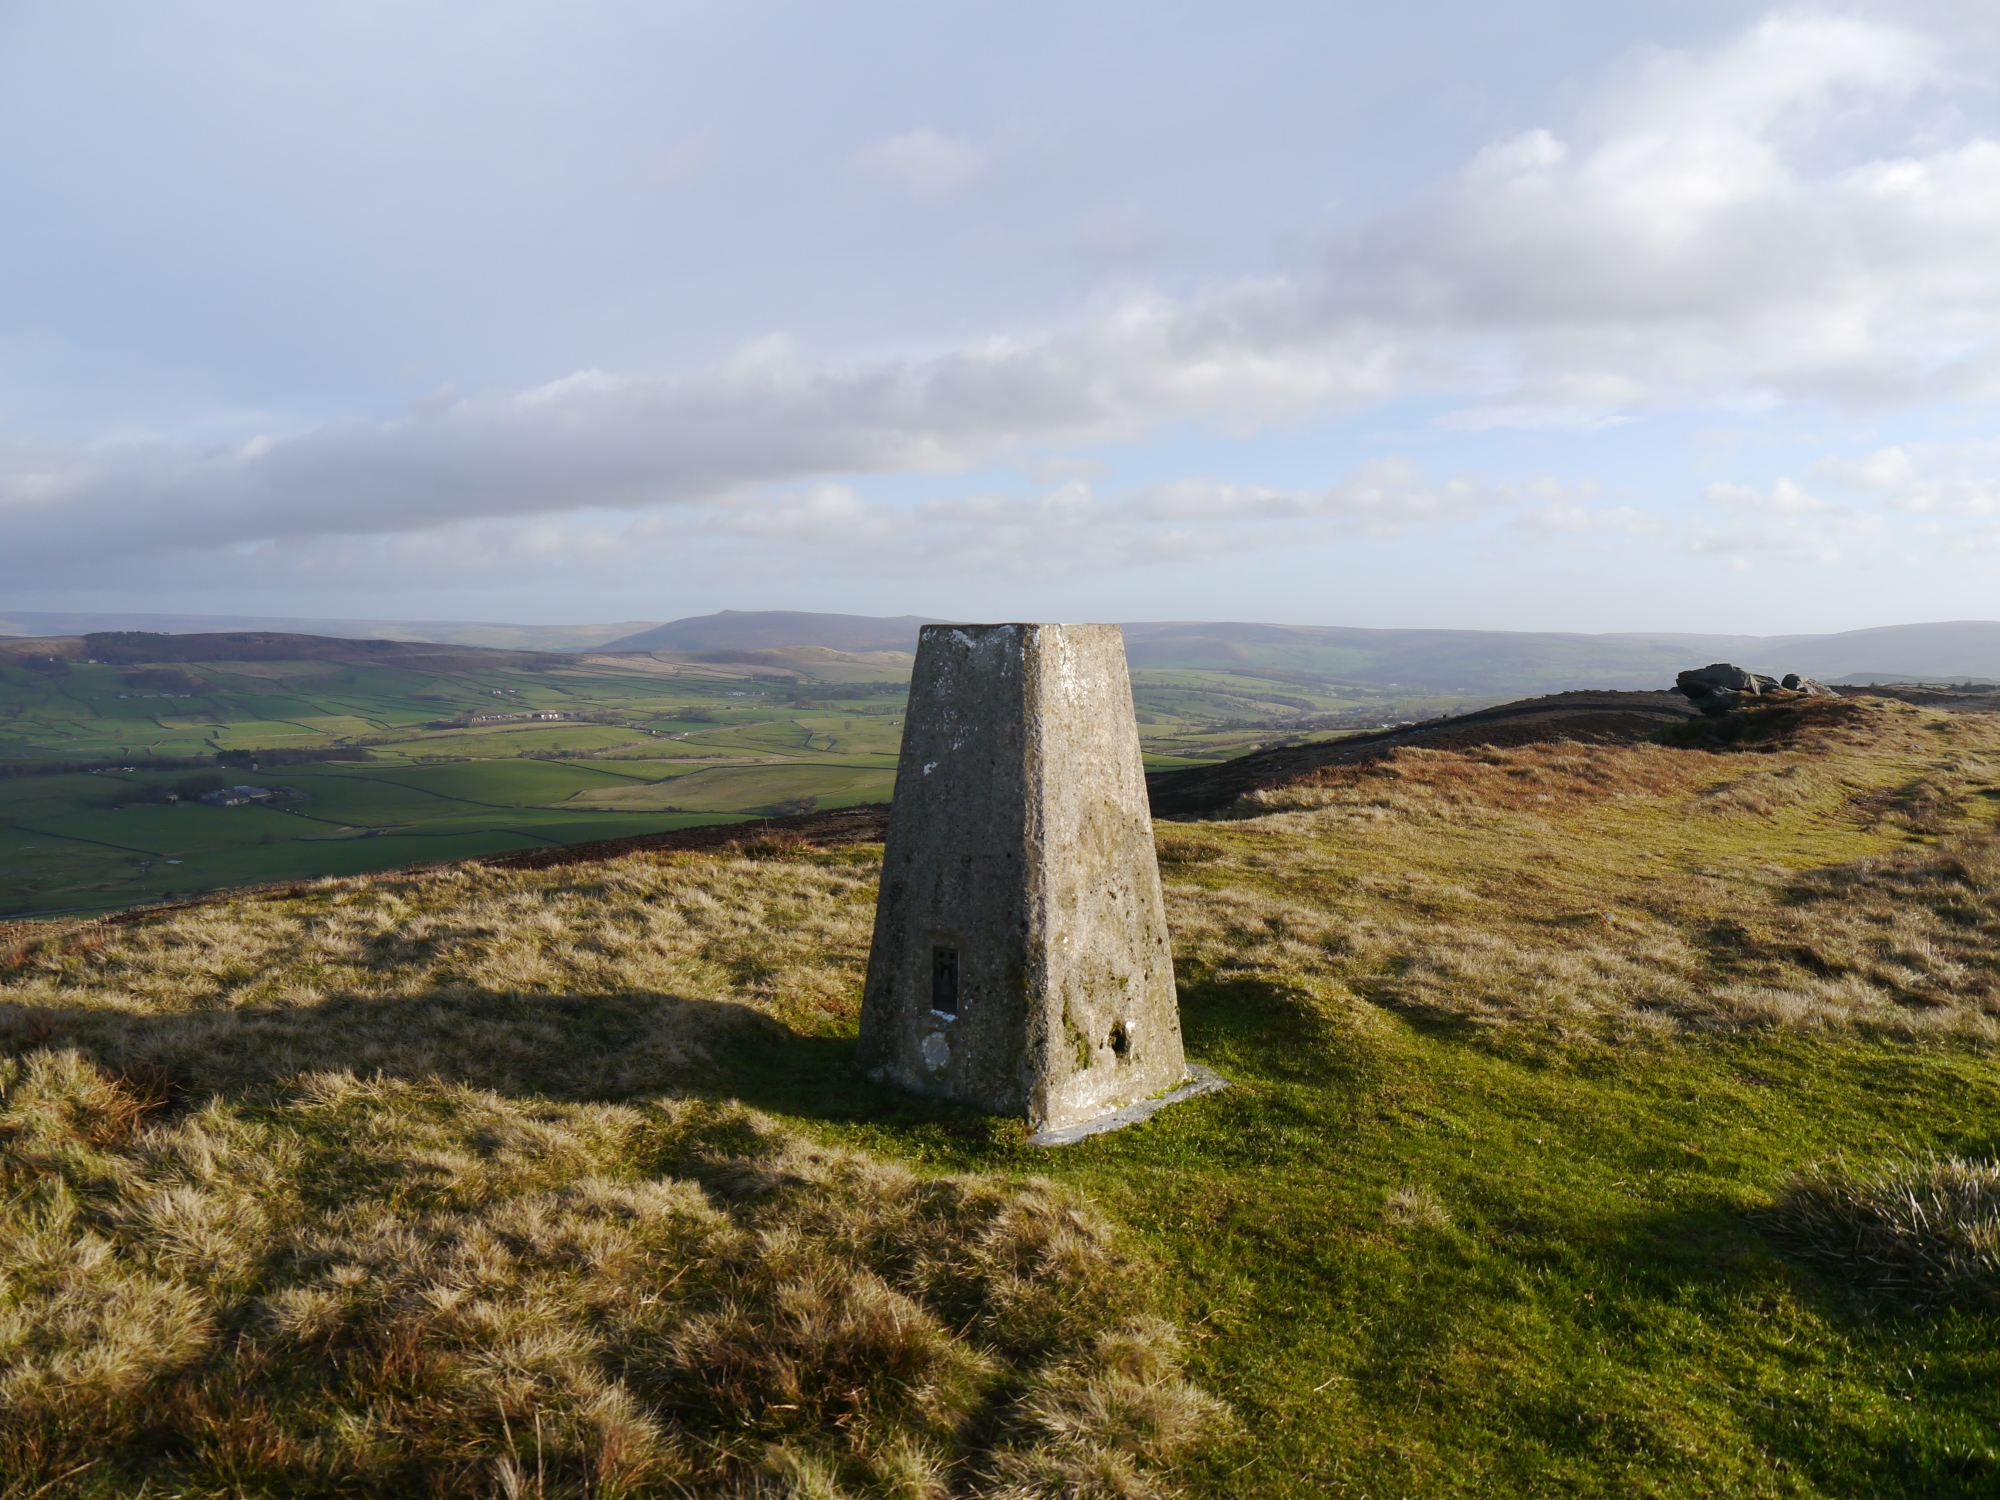 Vicars Allotment Trig Point